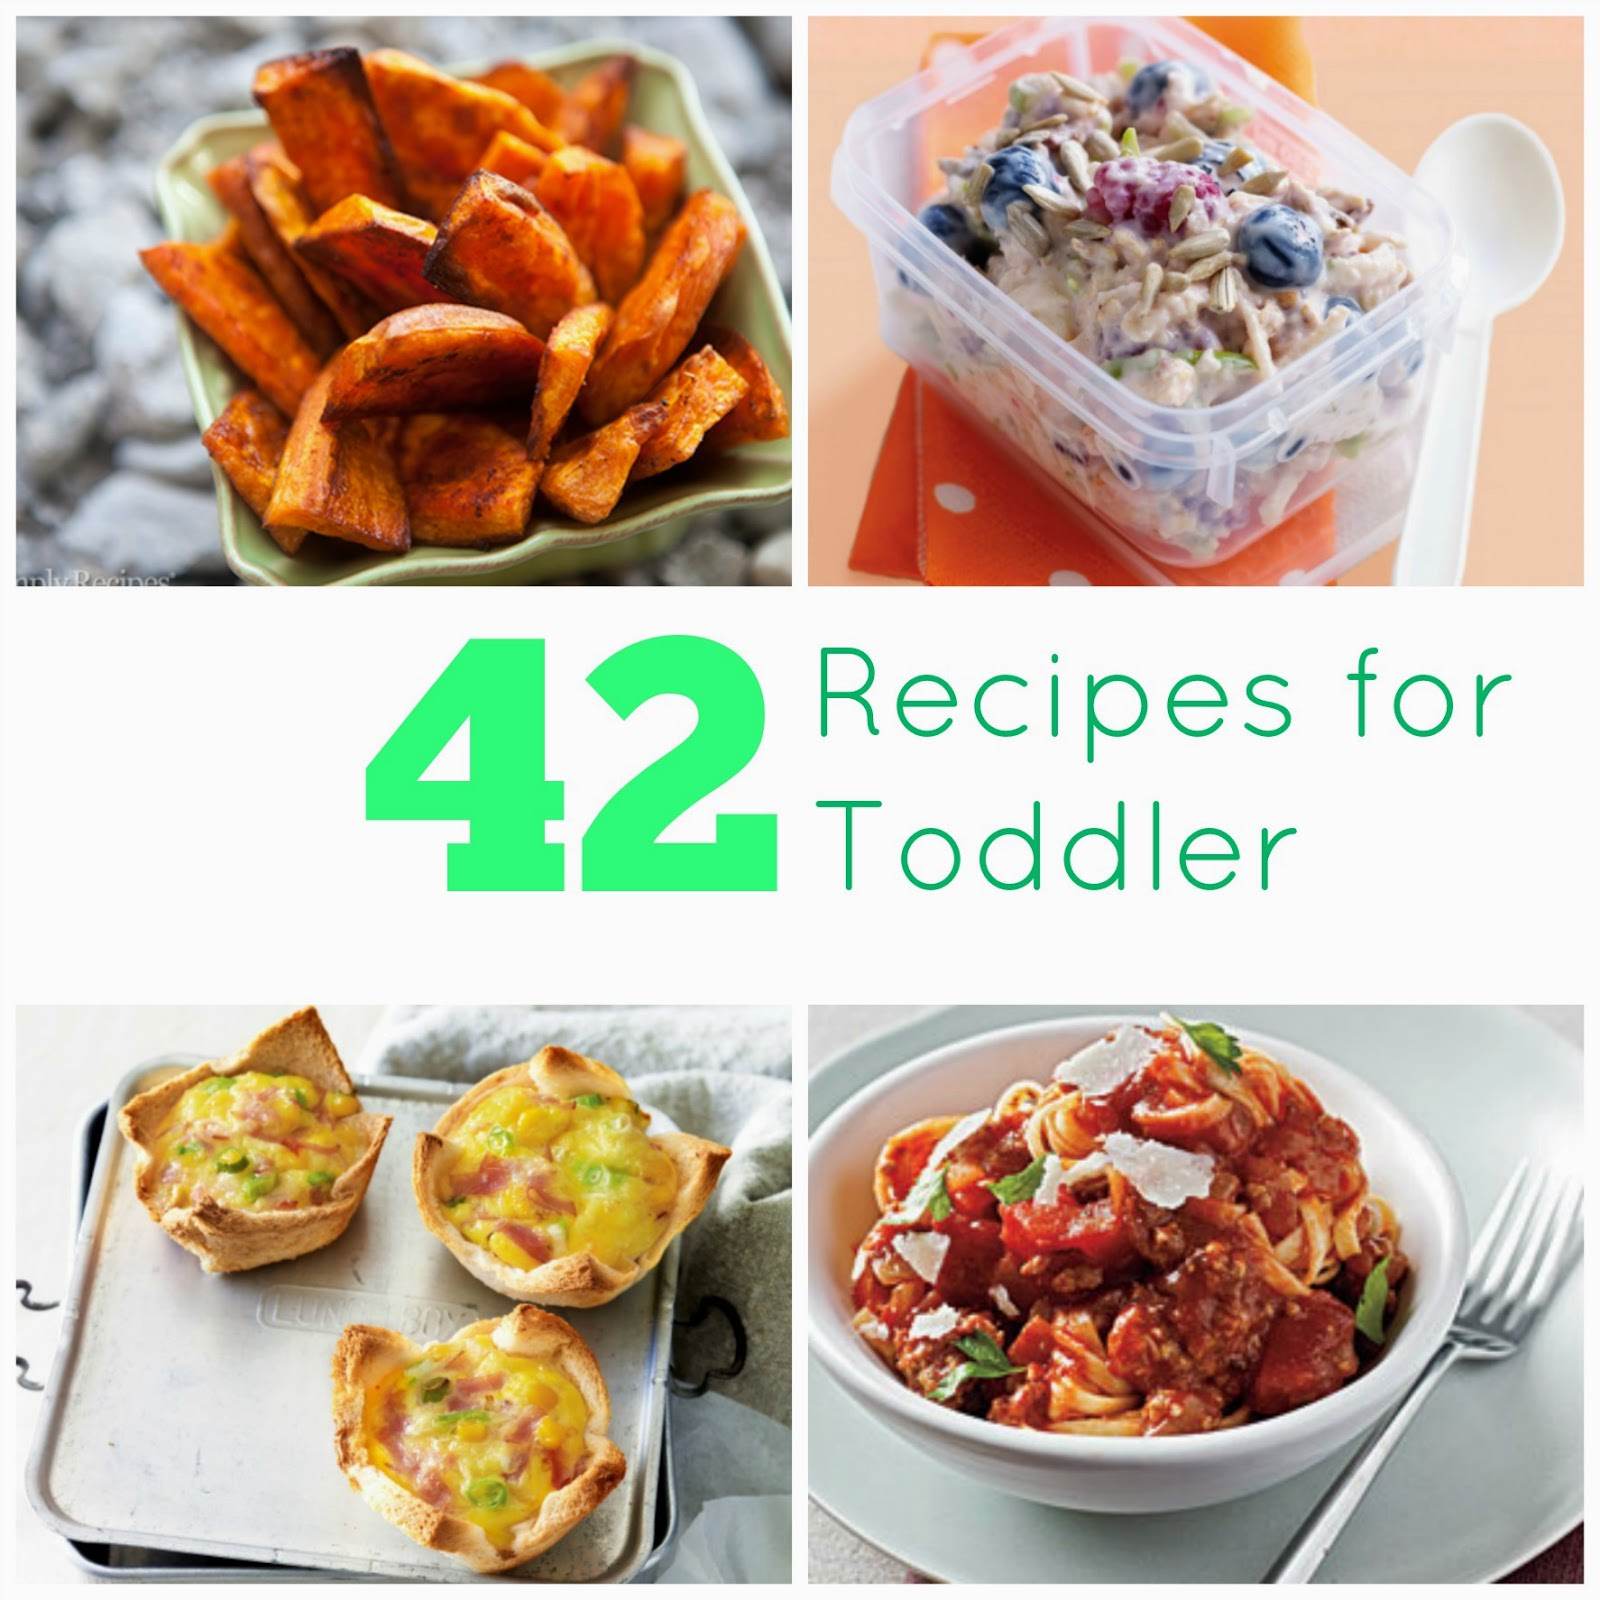 42 healthy recipes for toddlers most popular mom blogs the chill mom healthy recipes for toddlers forumfinder Images